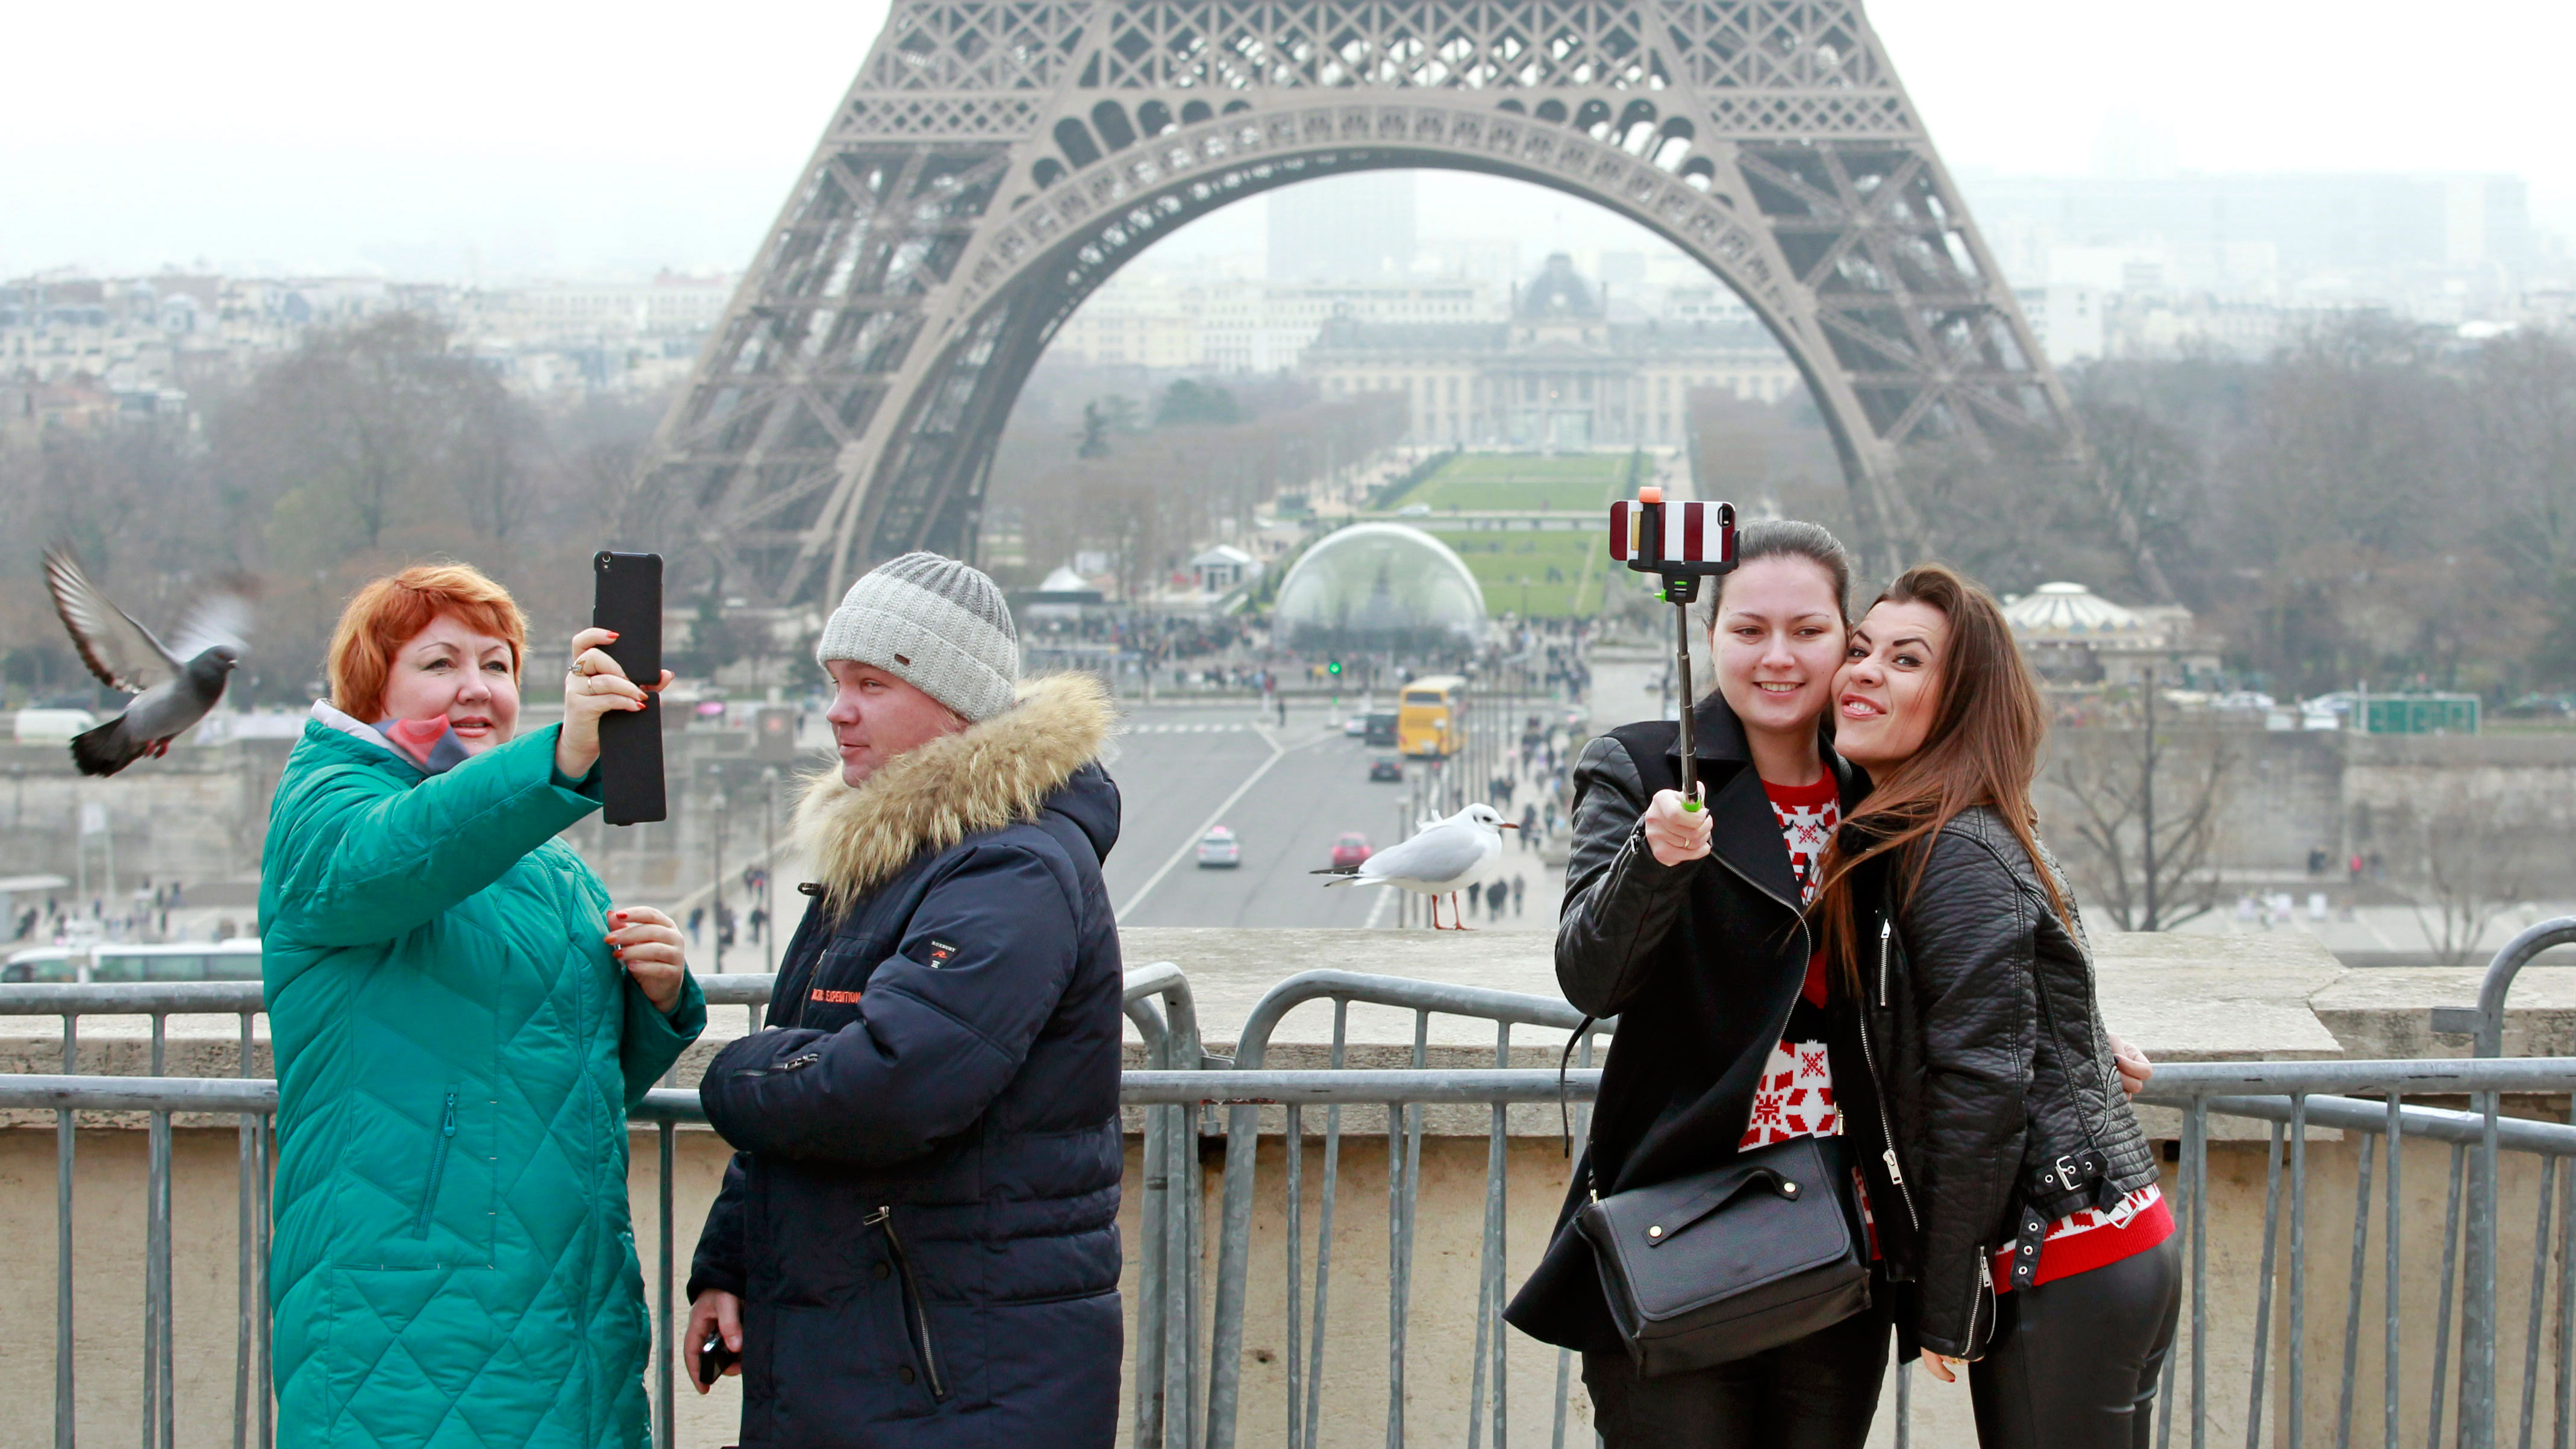 Adobe has developed an algorithm to remove the annoying tourists from your photos